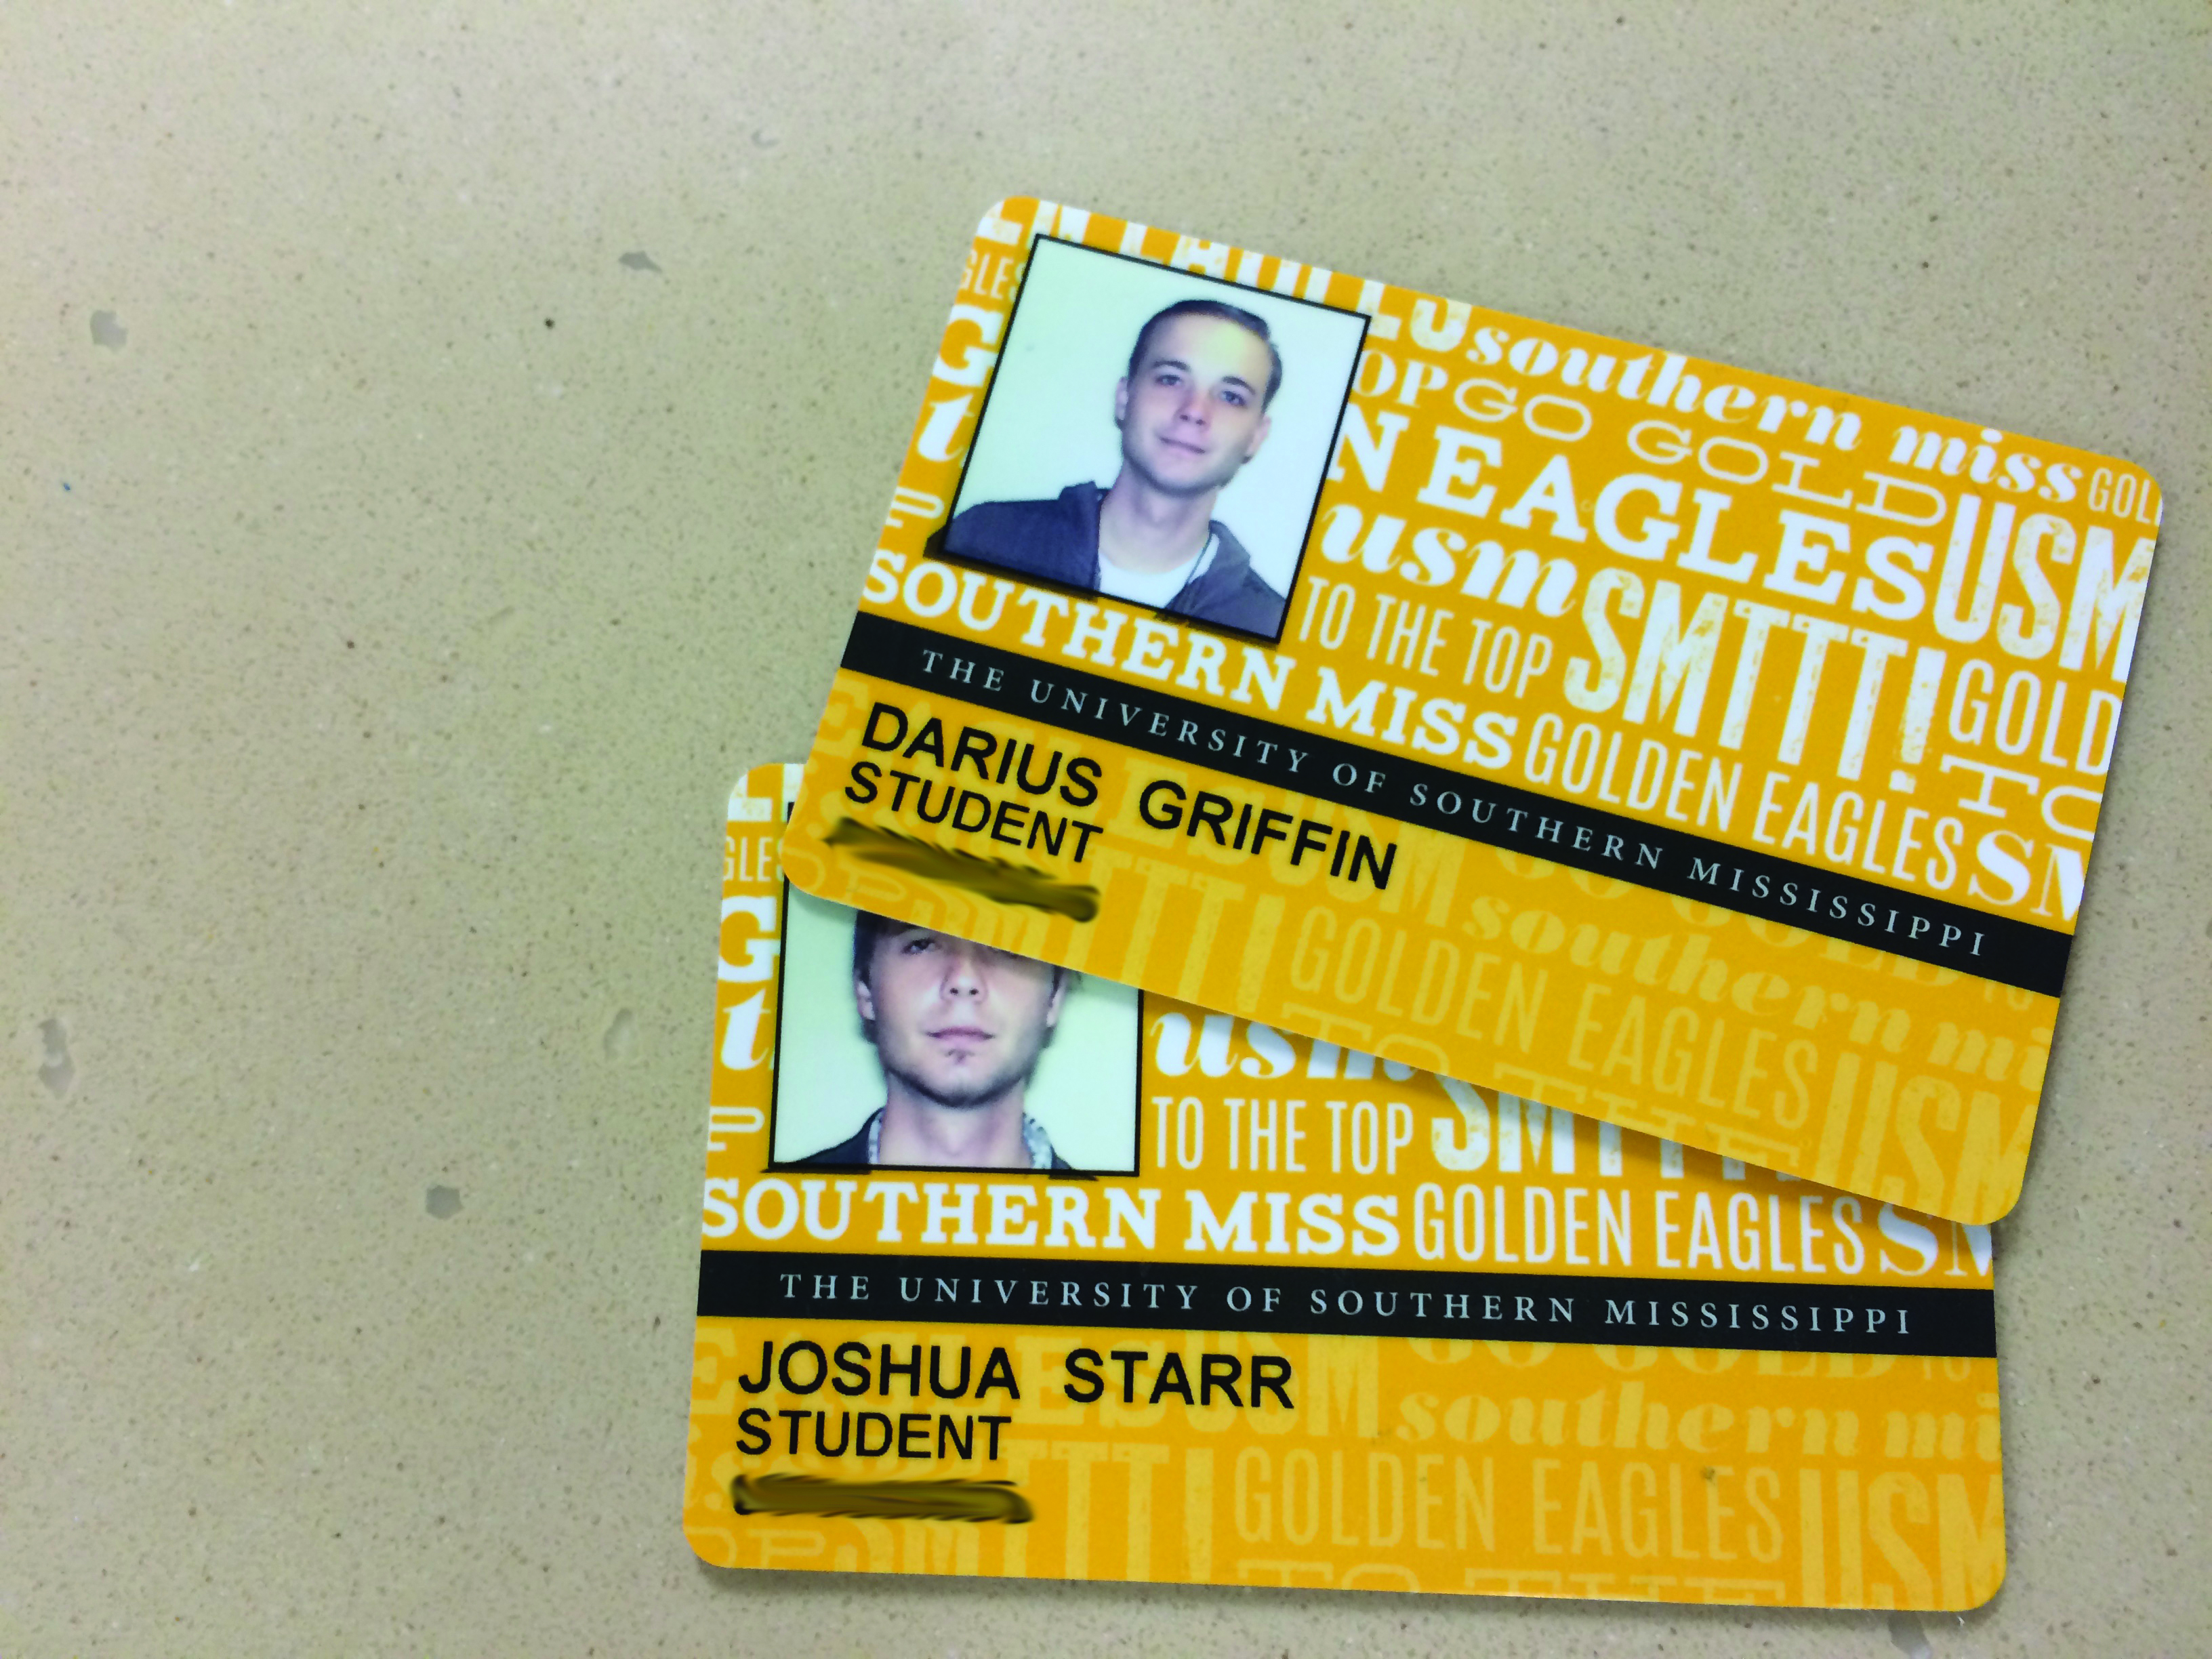 USM policy allows theft of student identities